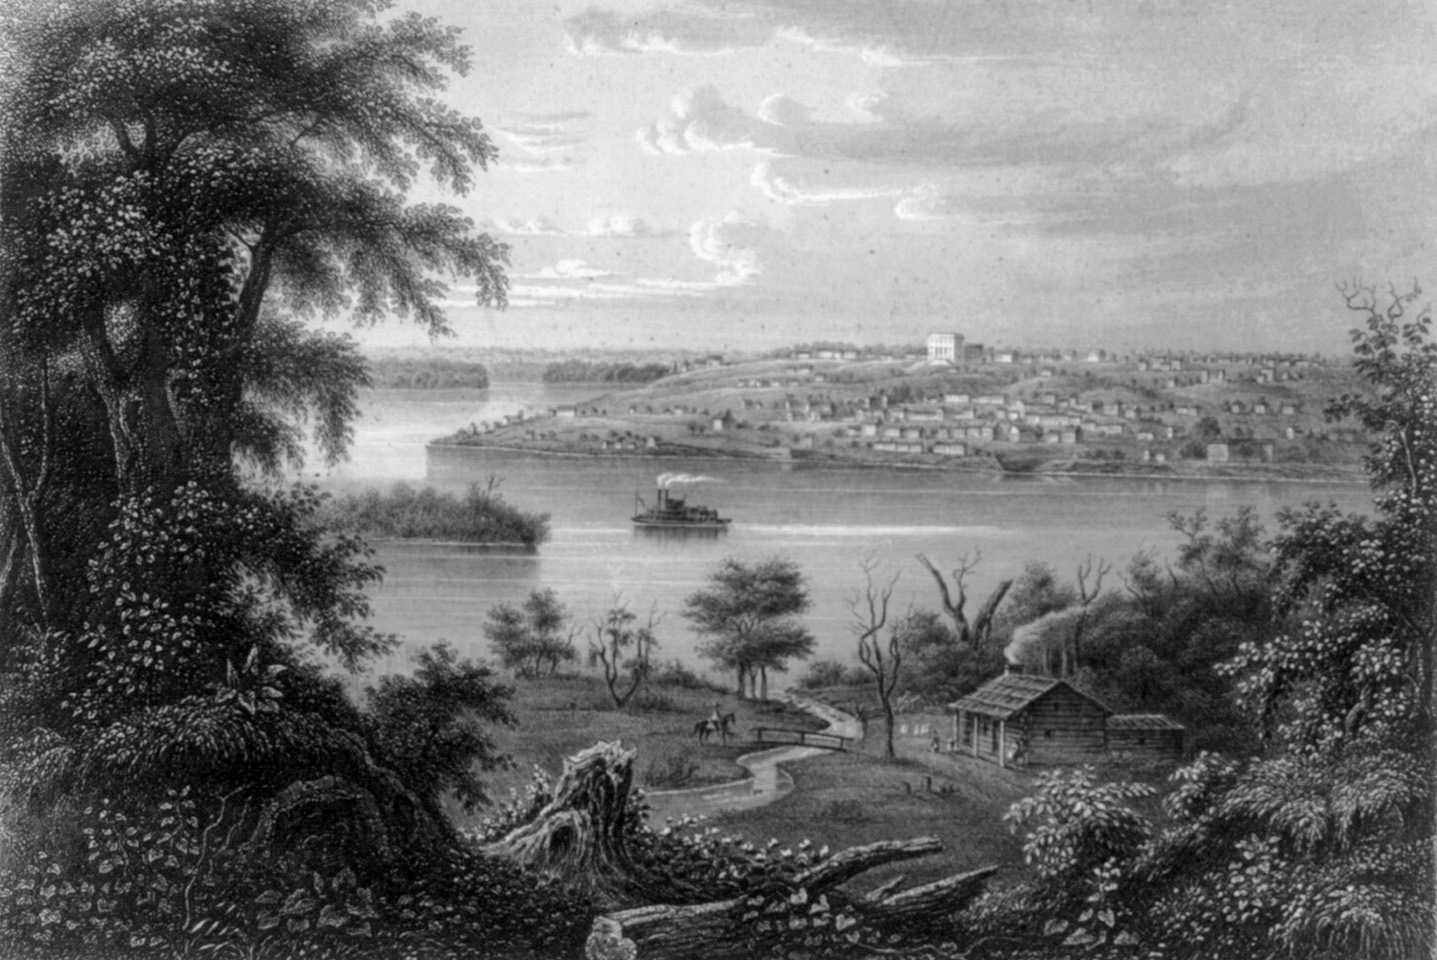 A view of Nauvoo in 1855